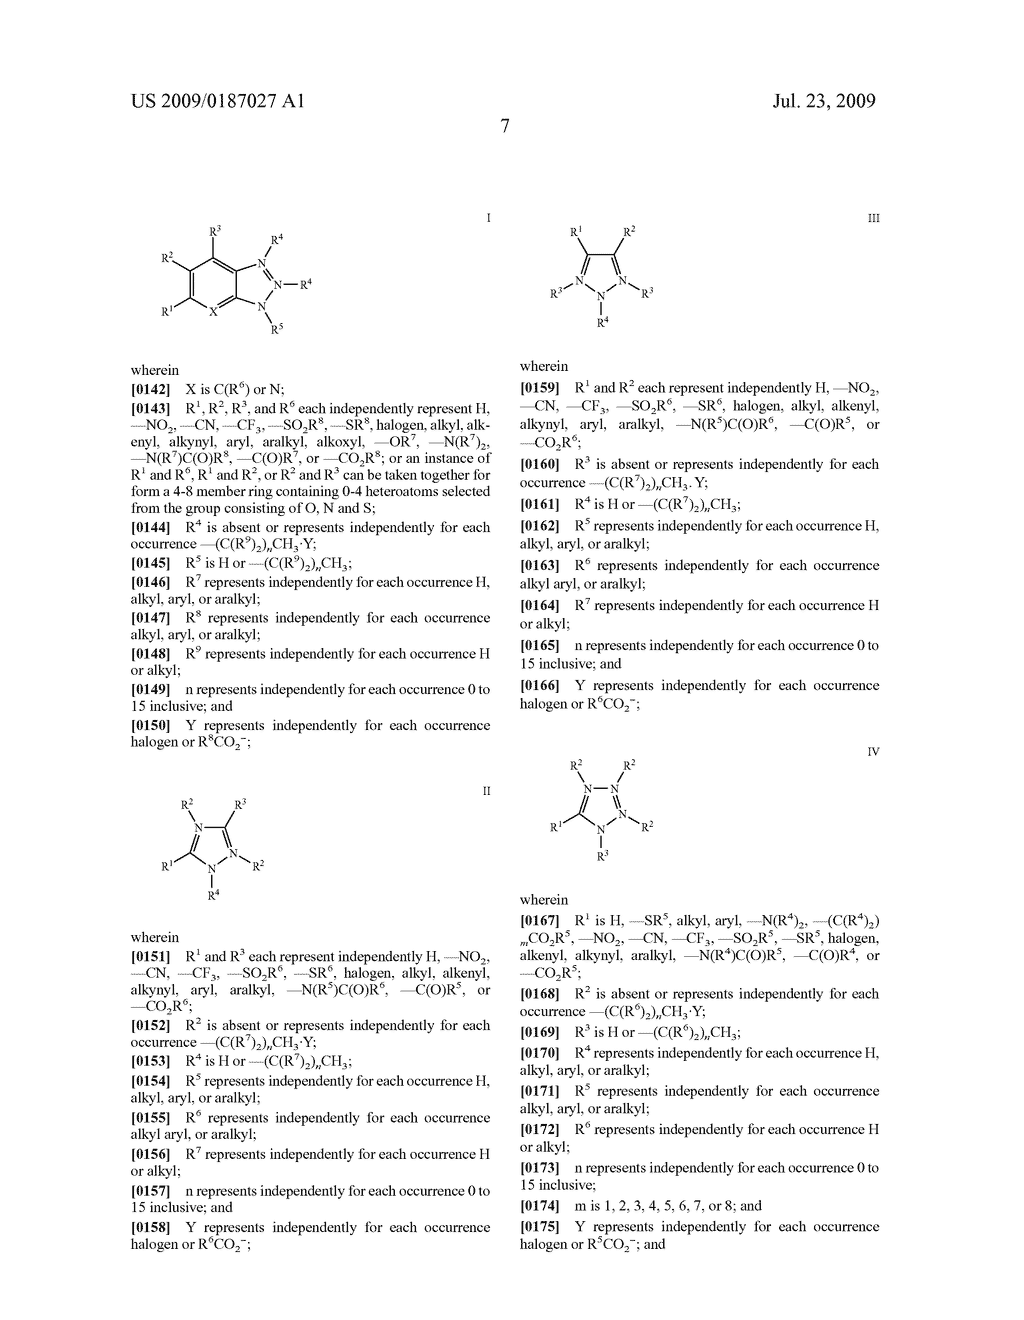 PROCESSES AND REAGENTS FOR SULFURIZATION OF OLIGONUCLEOTIDES - diagram, schematic, and image 59